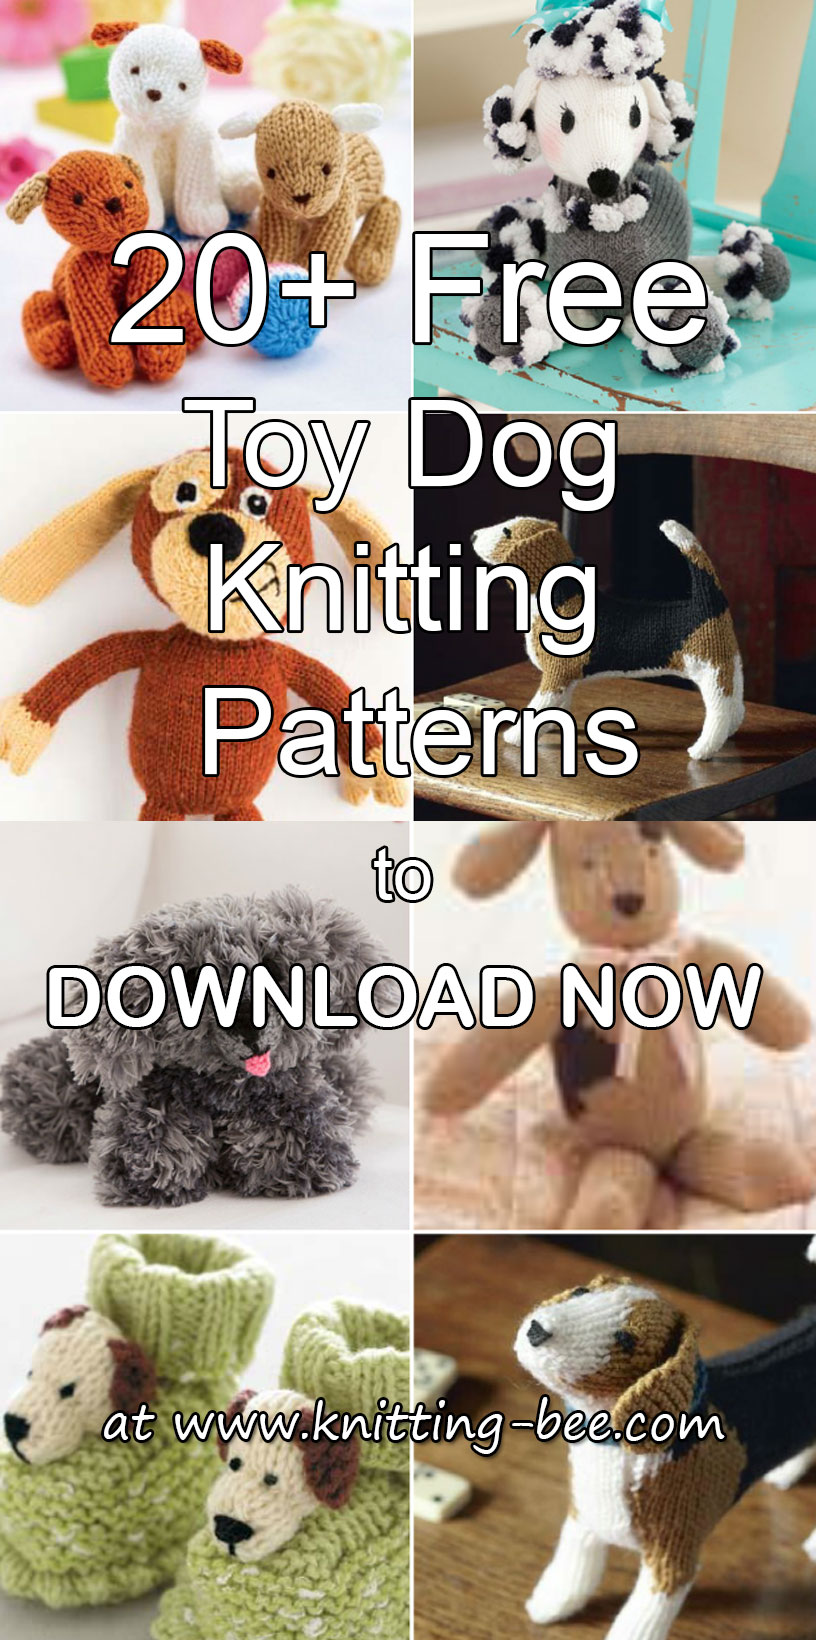 More than 20 Free Toy Dog Knitting Patterns to Download Now https://www.knitting-bee.com/free-knitting-patterns/free-knitted-toy-patterns/20-free-toy-dog-knitting-patterns-download-now